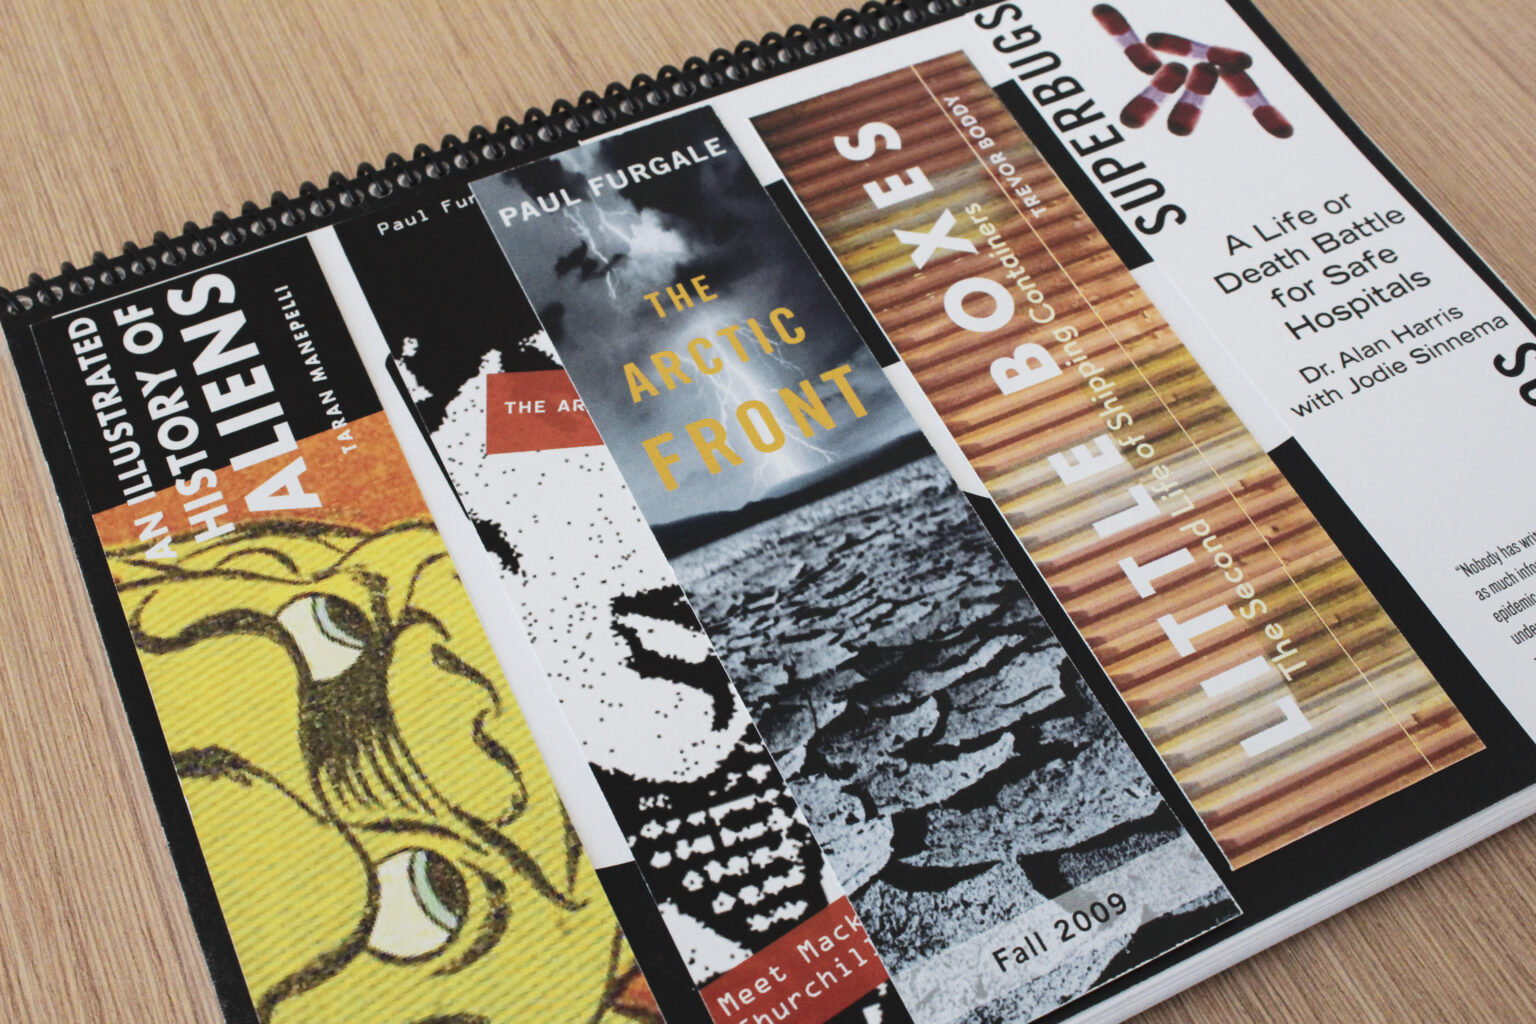 Bang On! Books project materials – promotional bookmarks